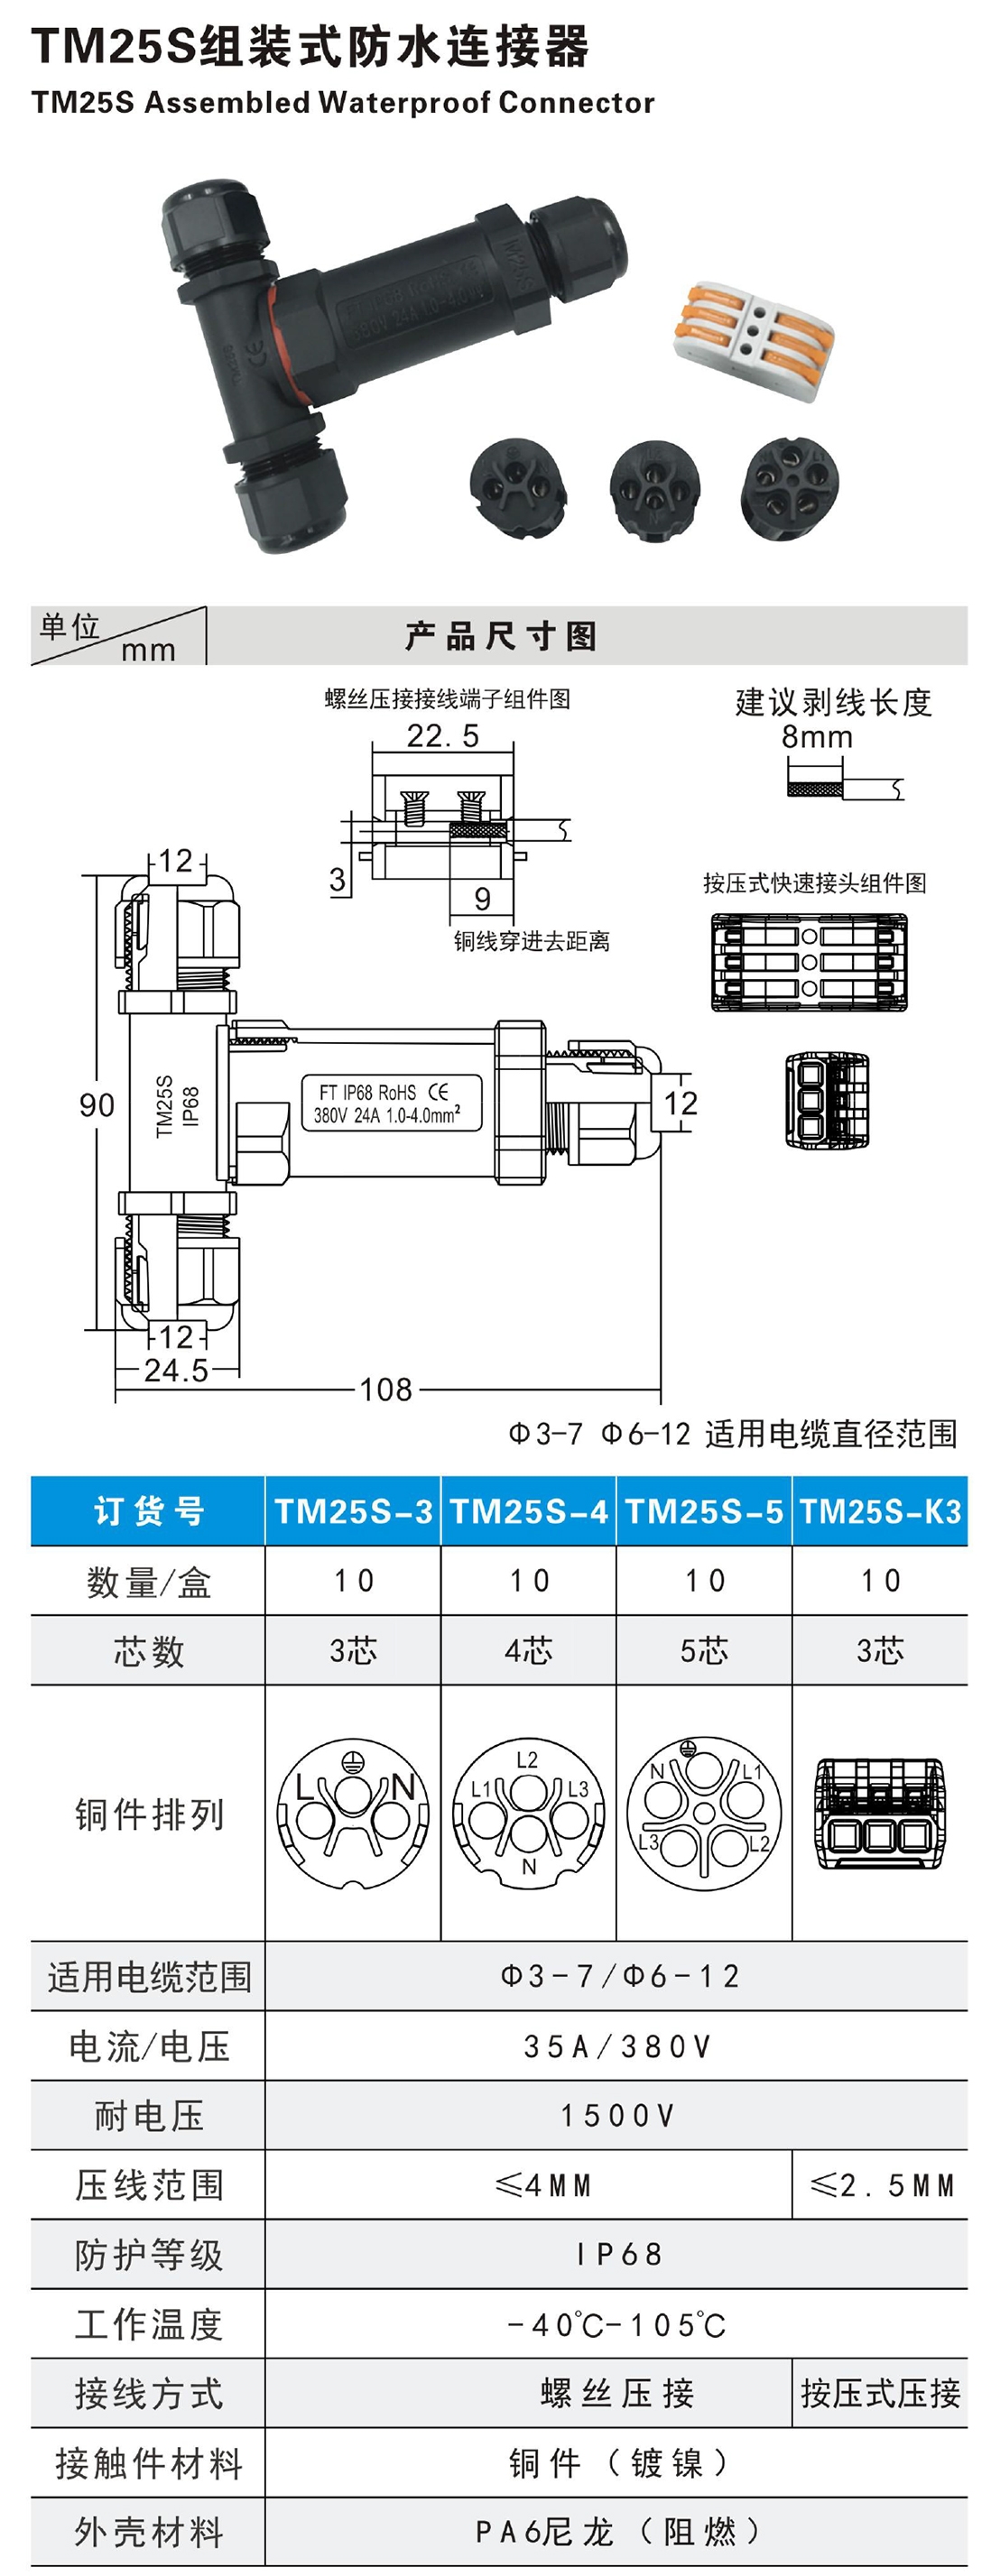 TM25S Assembled Waterproof Connector Parameters